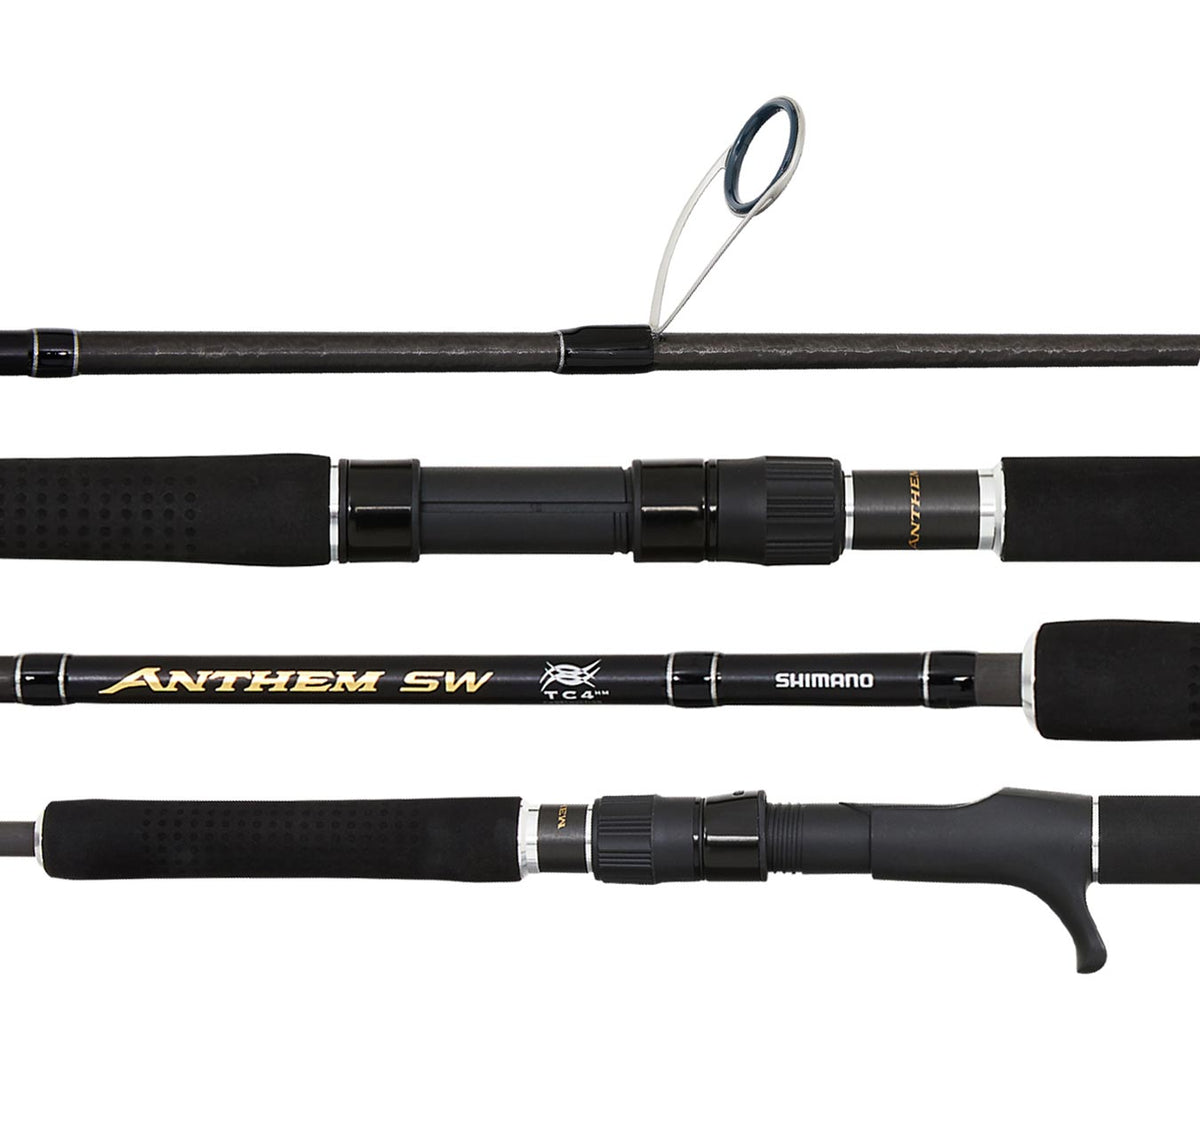 Shimano Anthem SW Rods